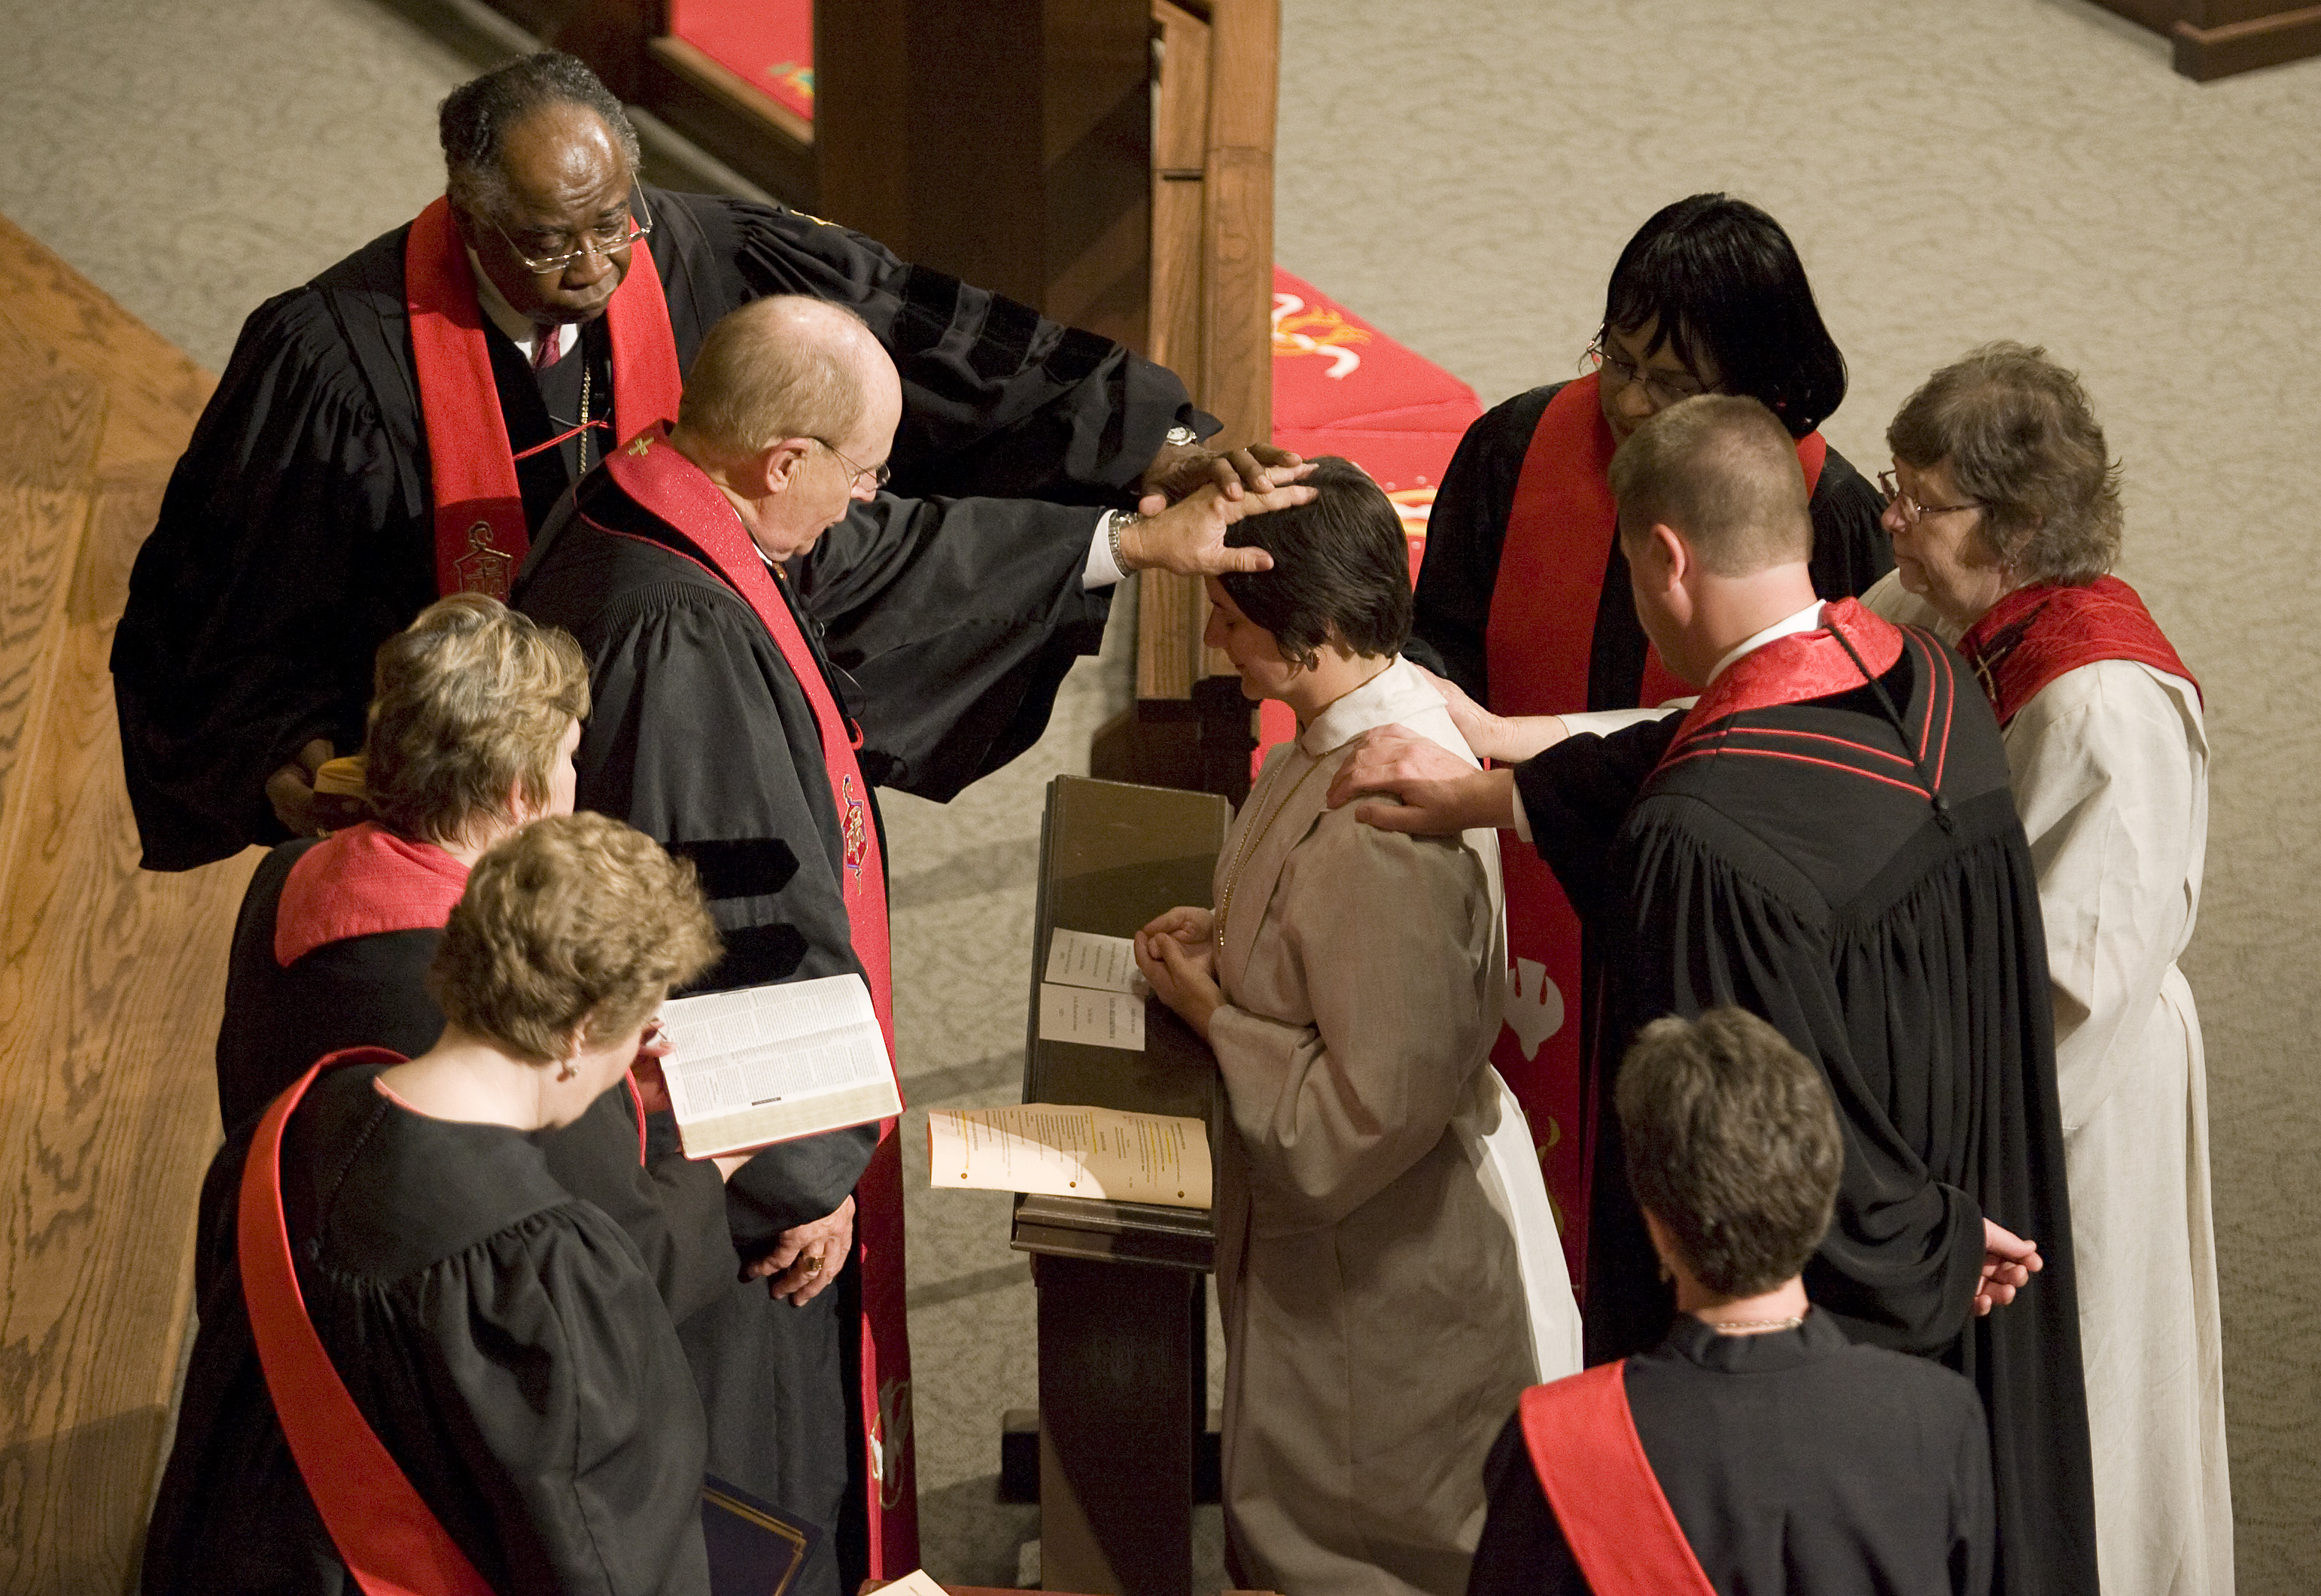 Commentary preaching tips for new clergy the united methodist church for Ordination images